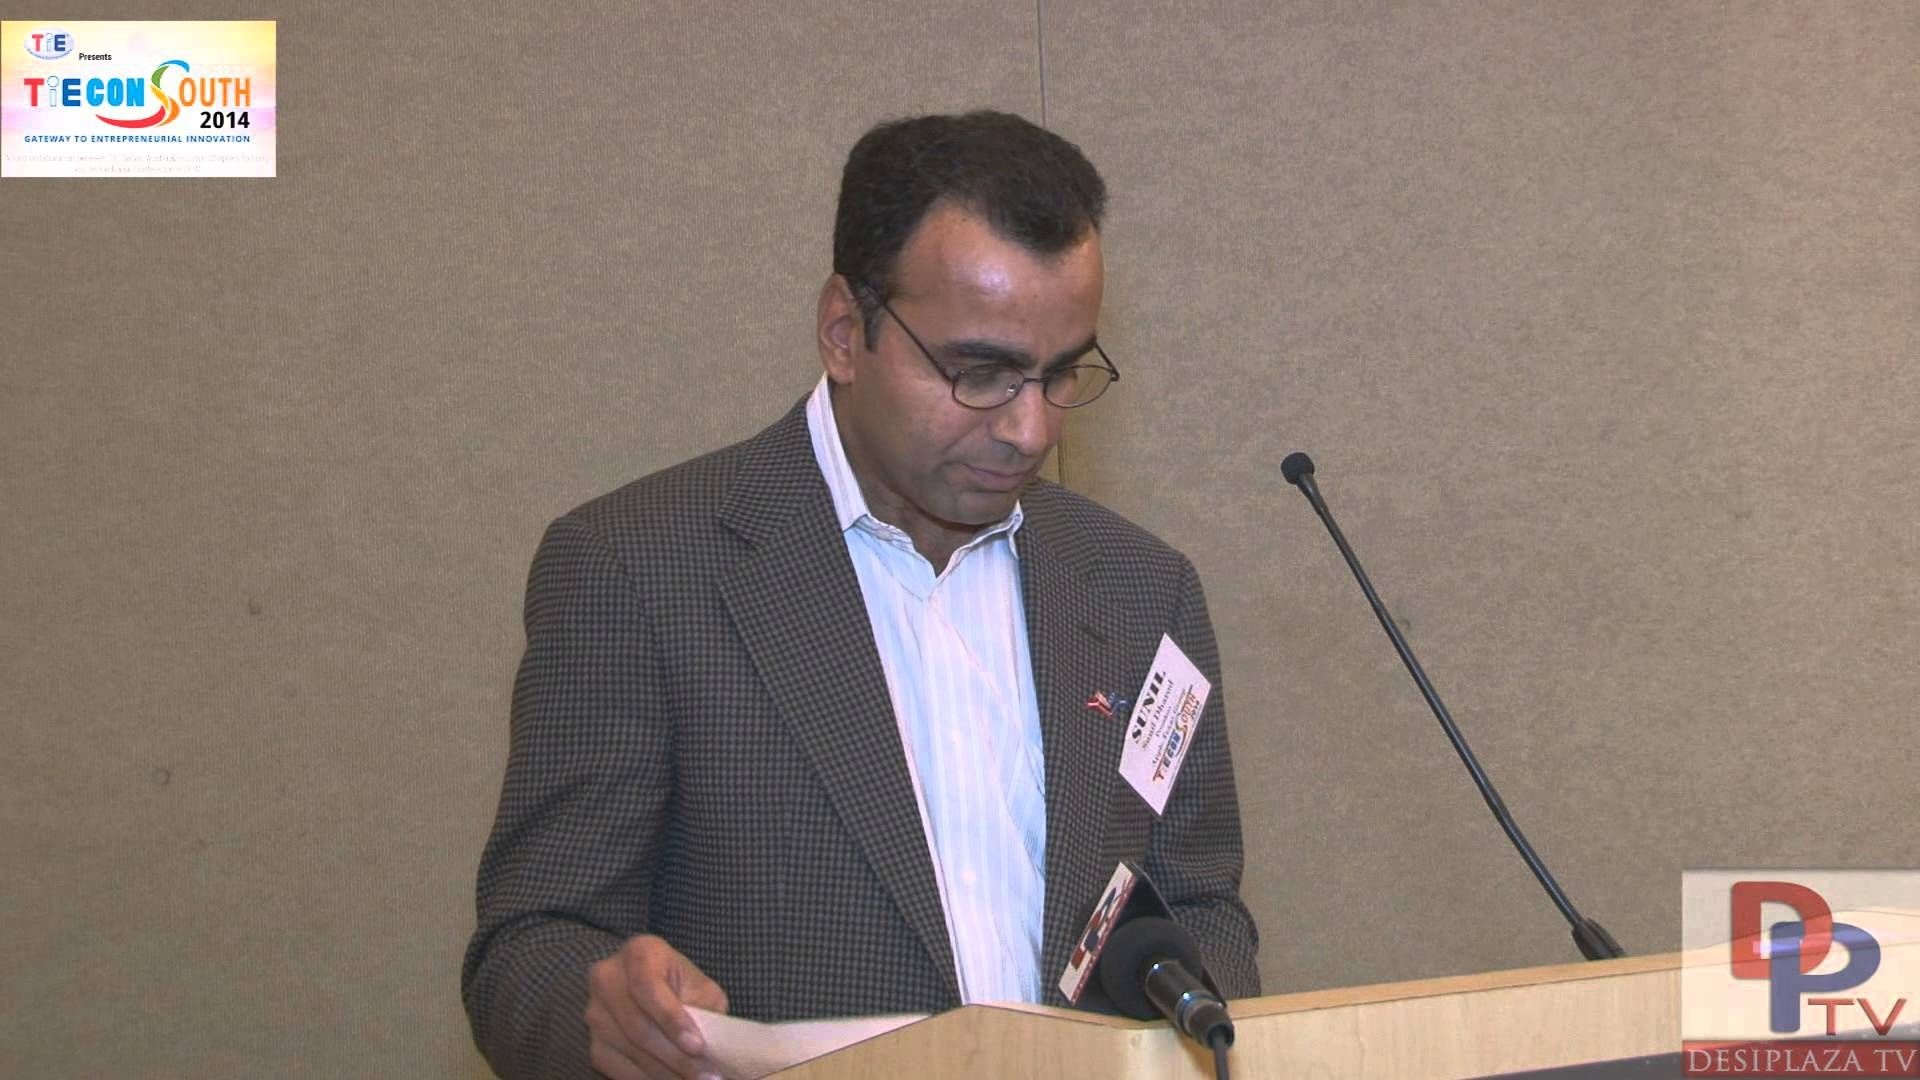 Mr.Sunil Dharodia giving his speech at TiECon Southwest 2014